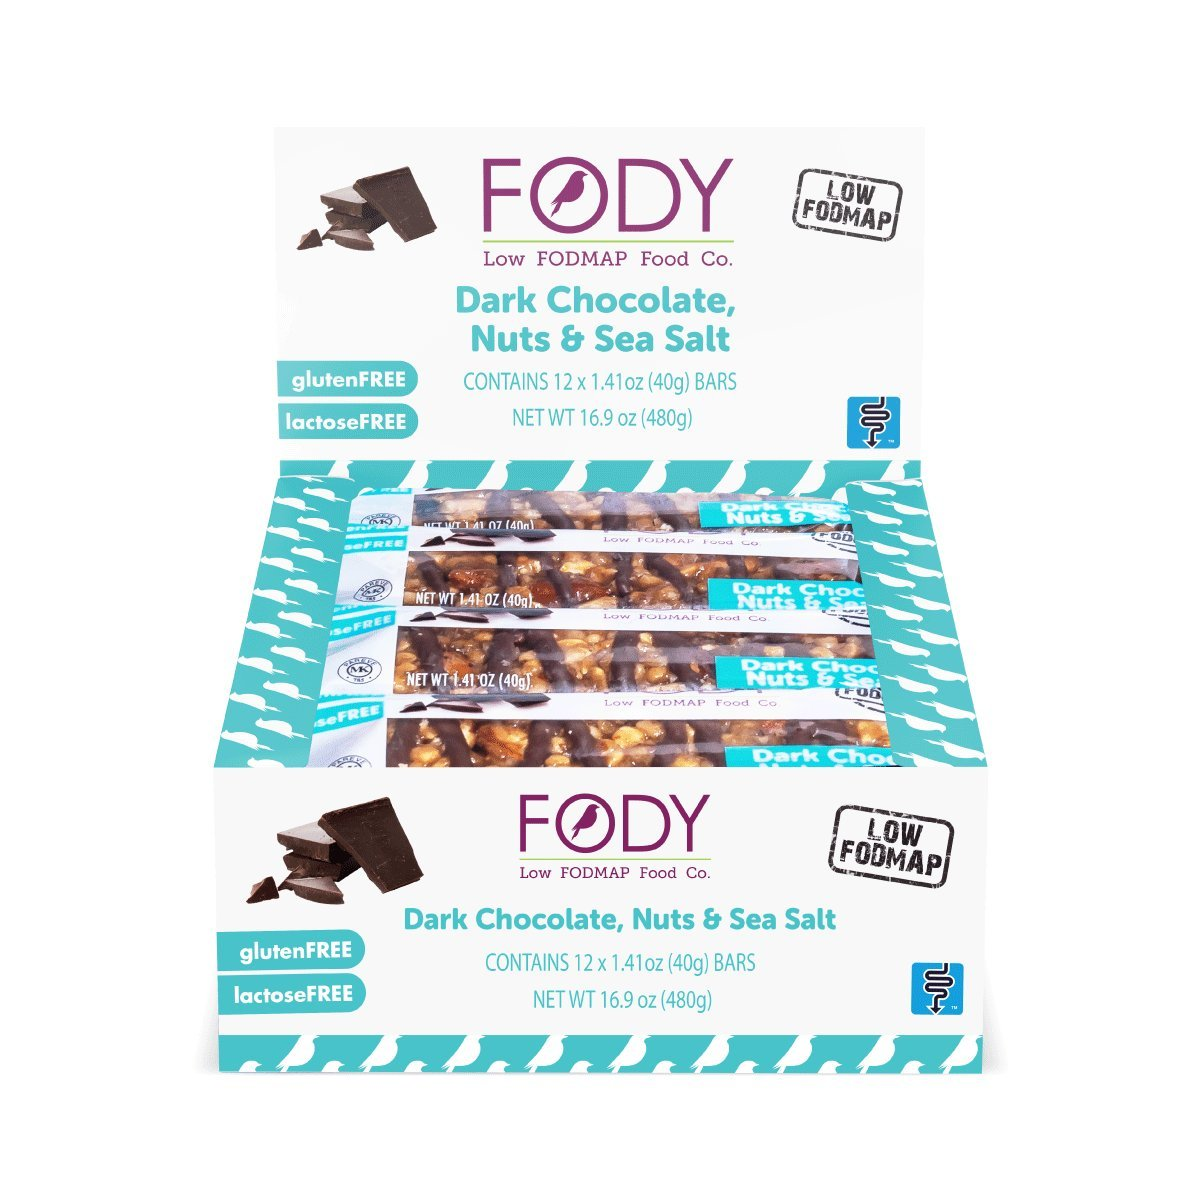 Fody Food Co, Dark Chocolate Nuts & Sea Salt Bars, Low FODMAP and Gut Friendly, Gluten and Lactose Free, 12 Pack of Bars